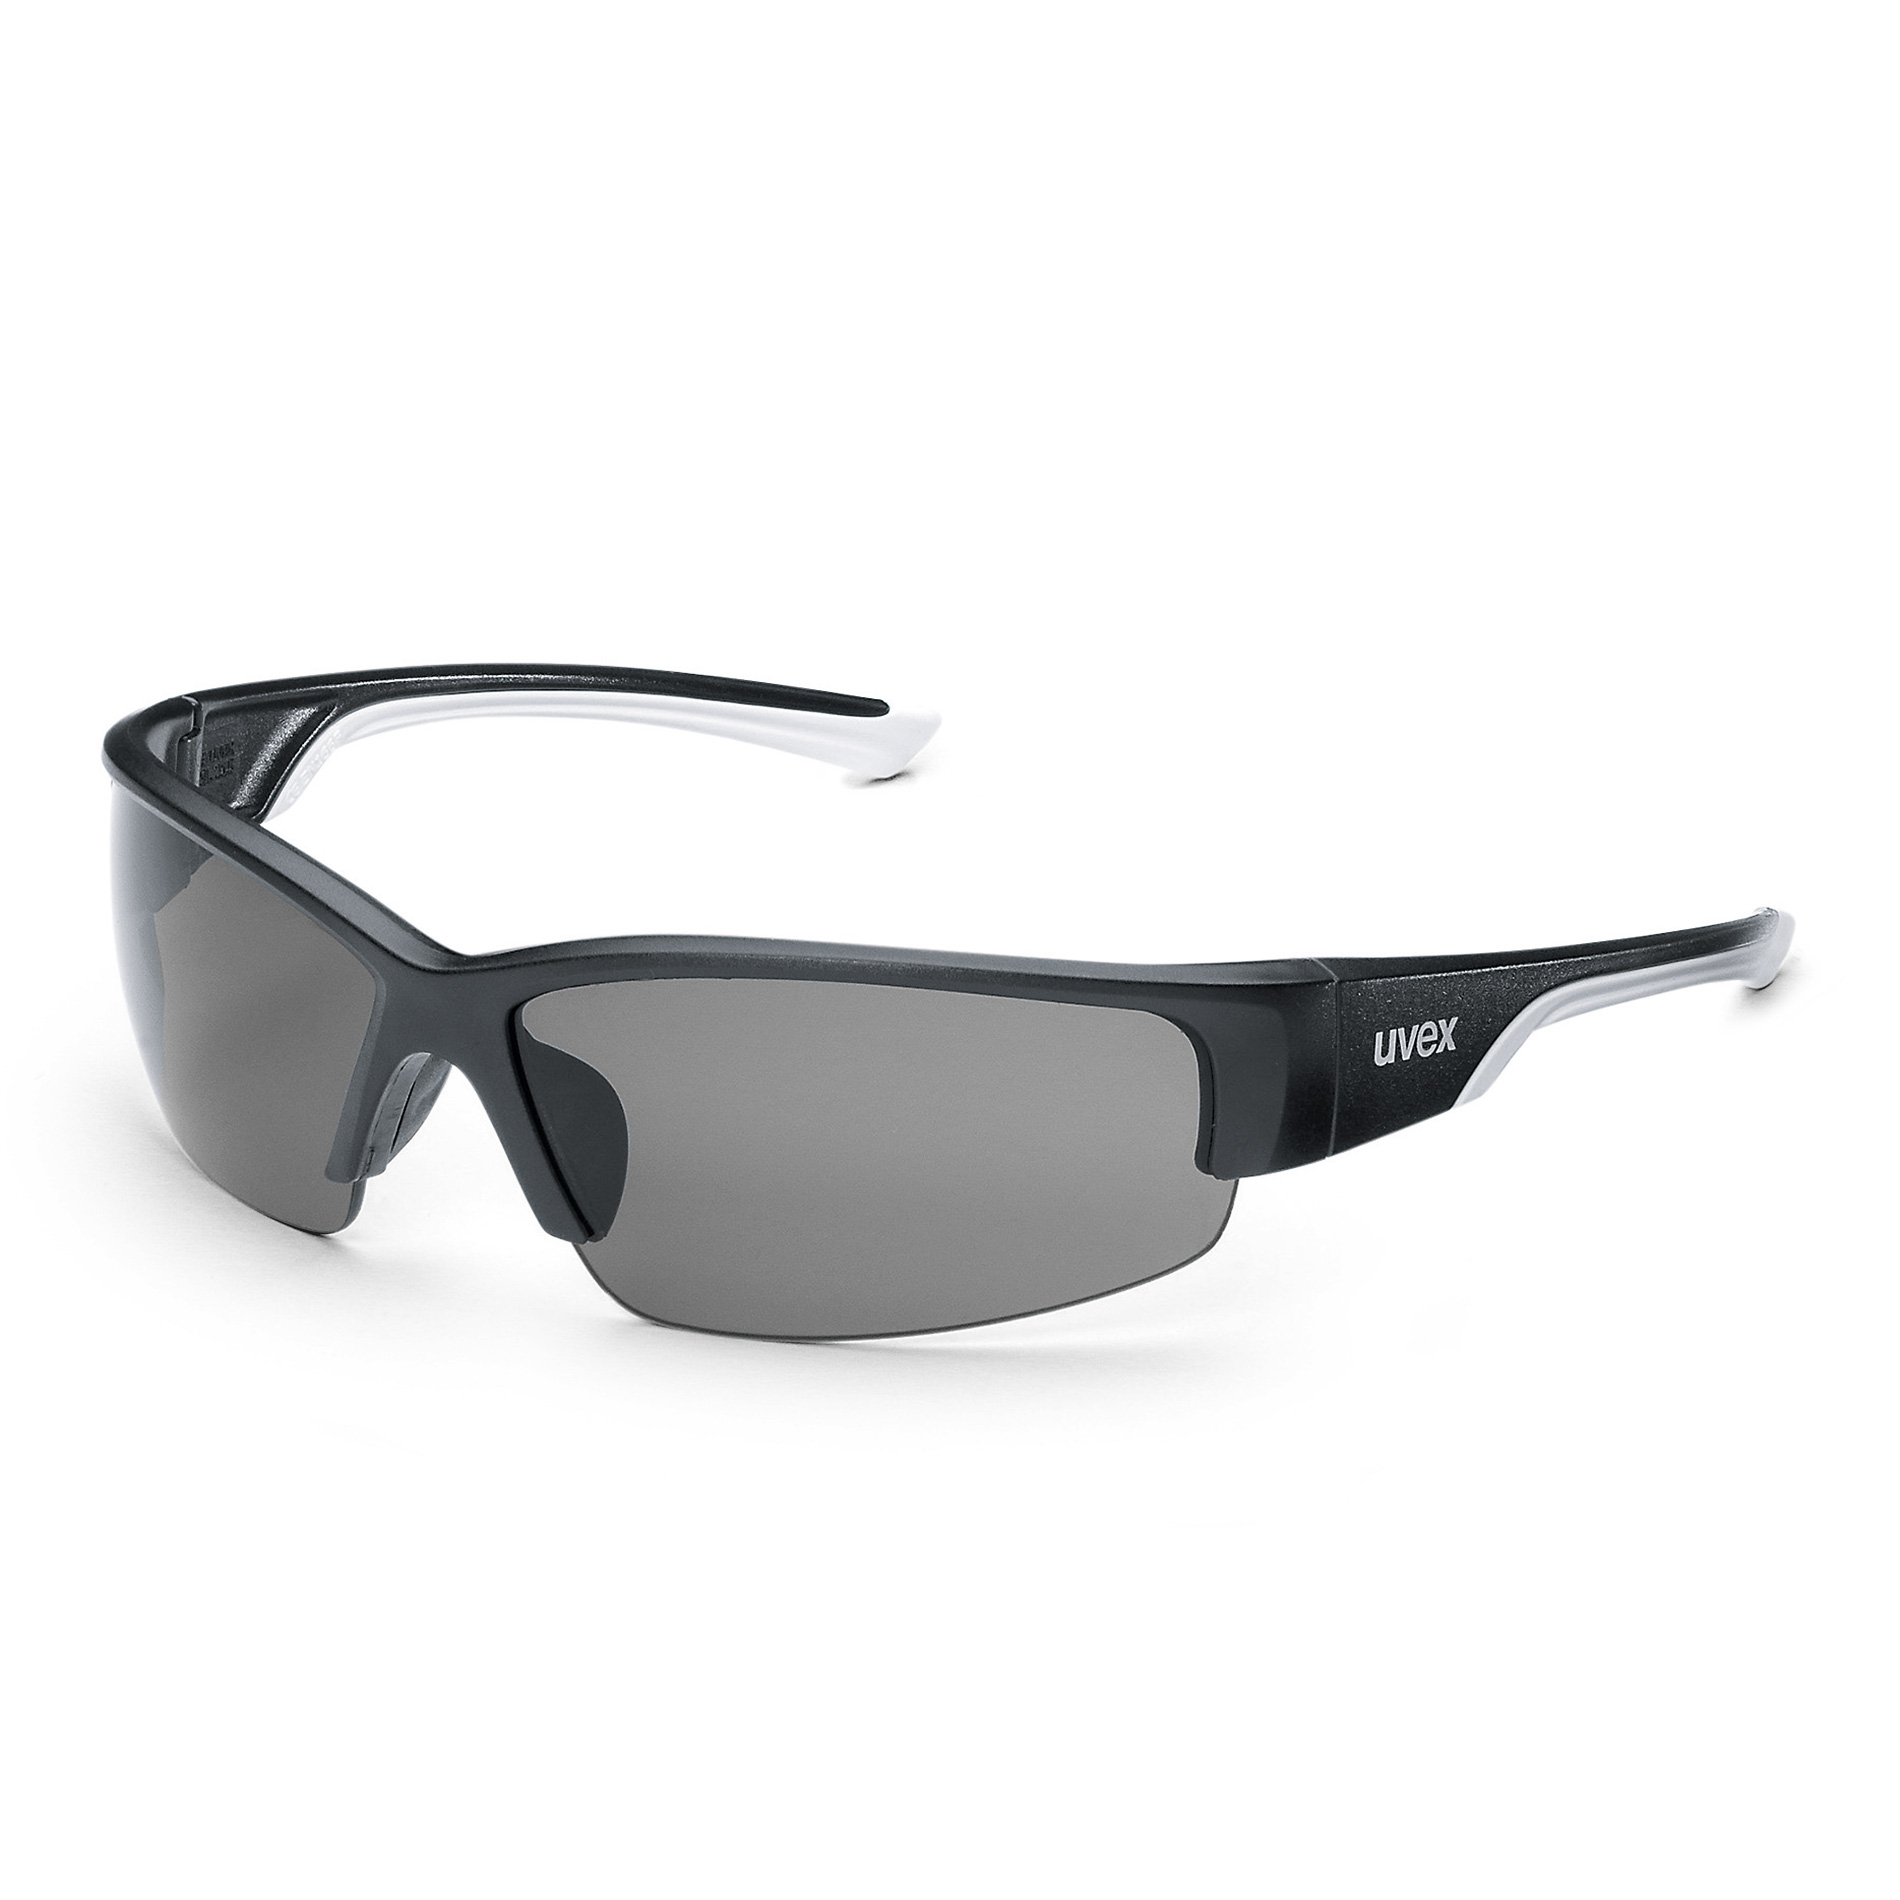 7819a536dc uvex polavision spectacles